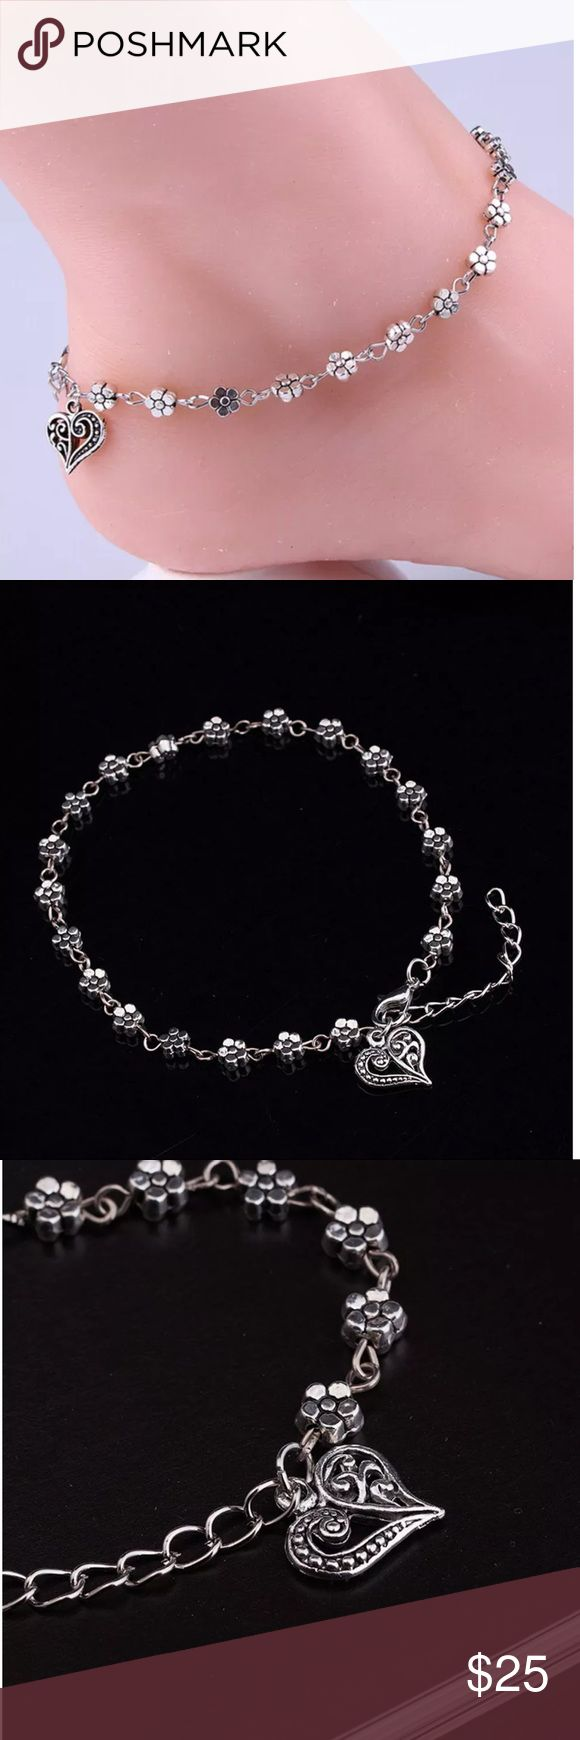 fashion bracelet designer continue pin anklet multiple of ankle chain bracelets in strands with crystals